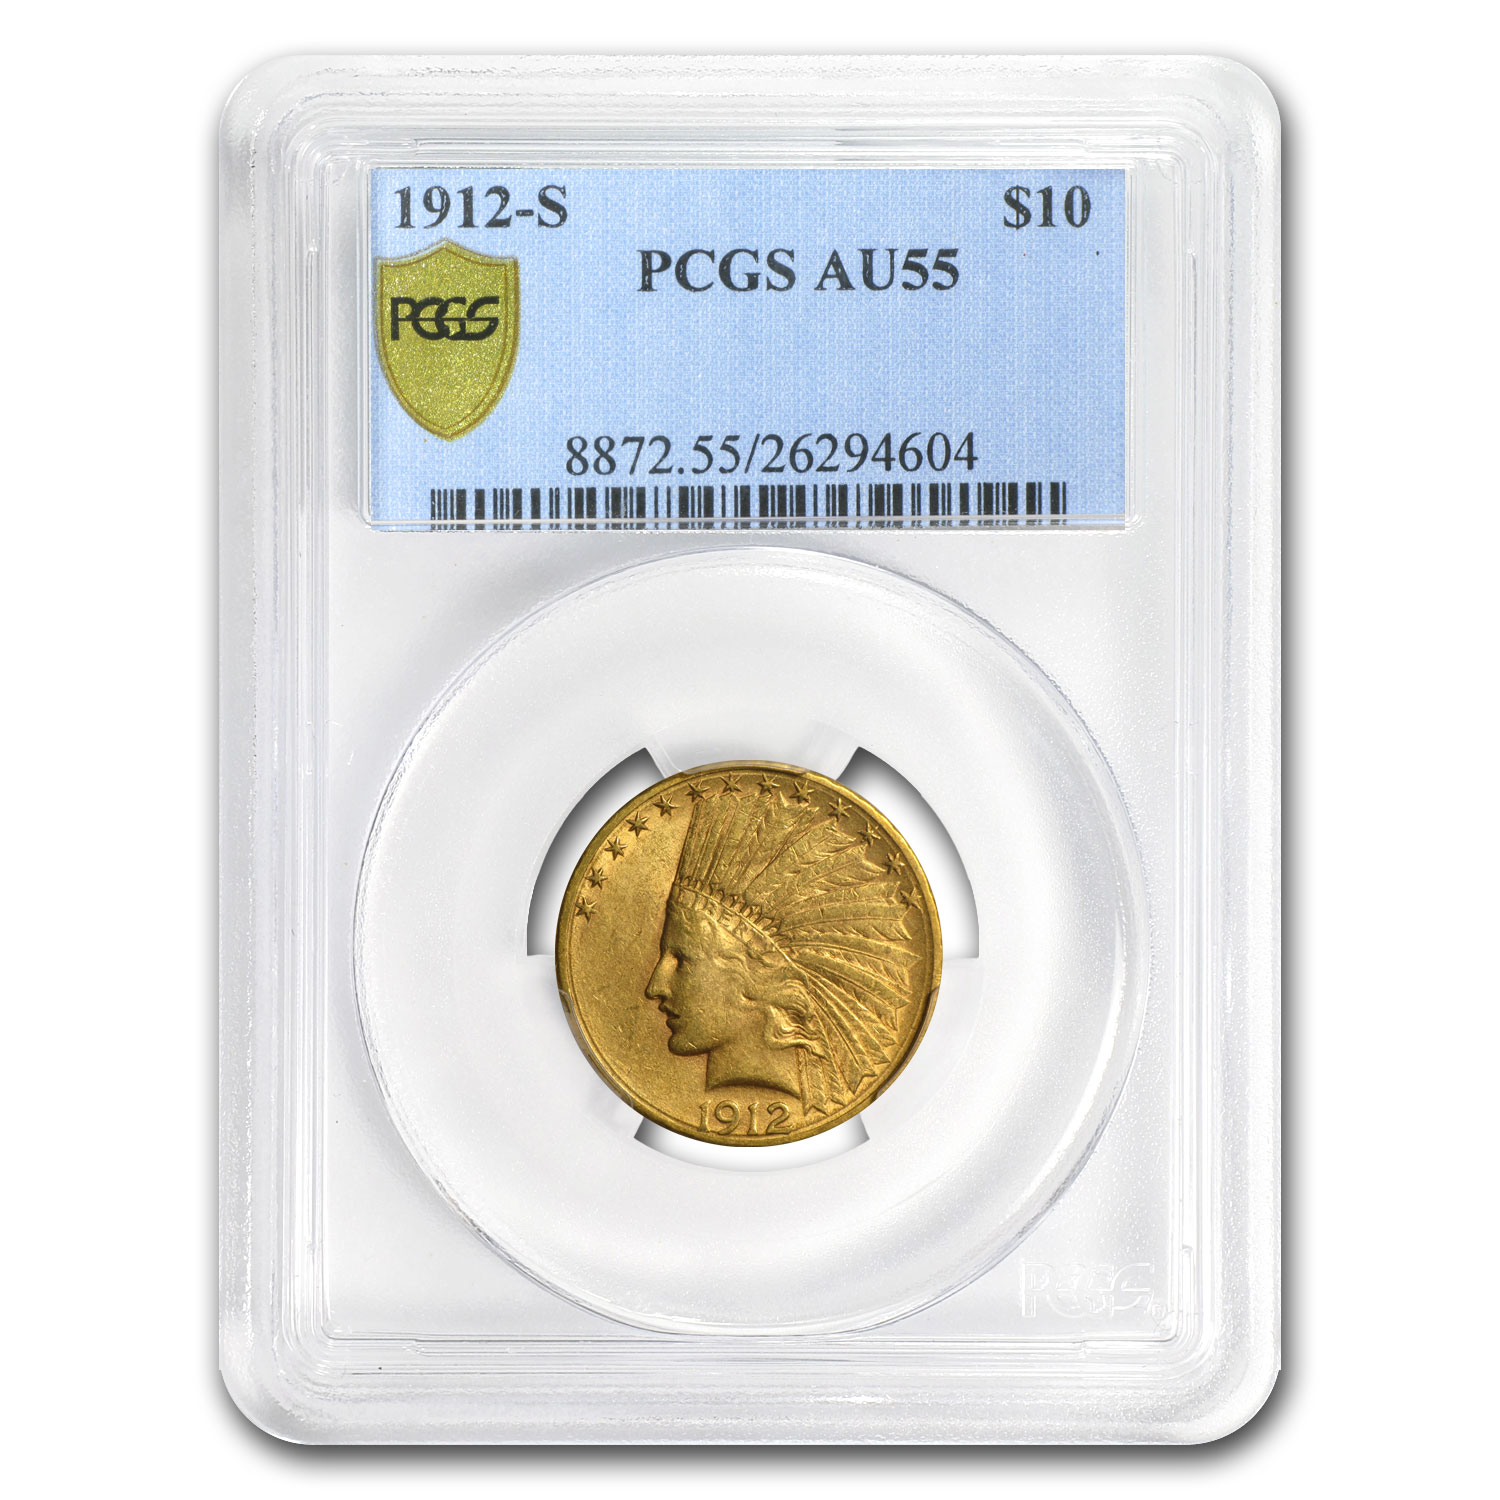 1912-S $10 Indian Gold Eagle - AU-55 PCGS